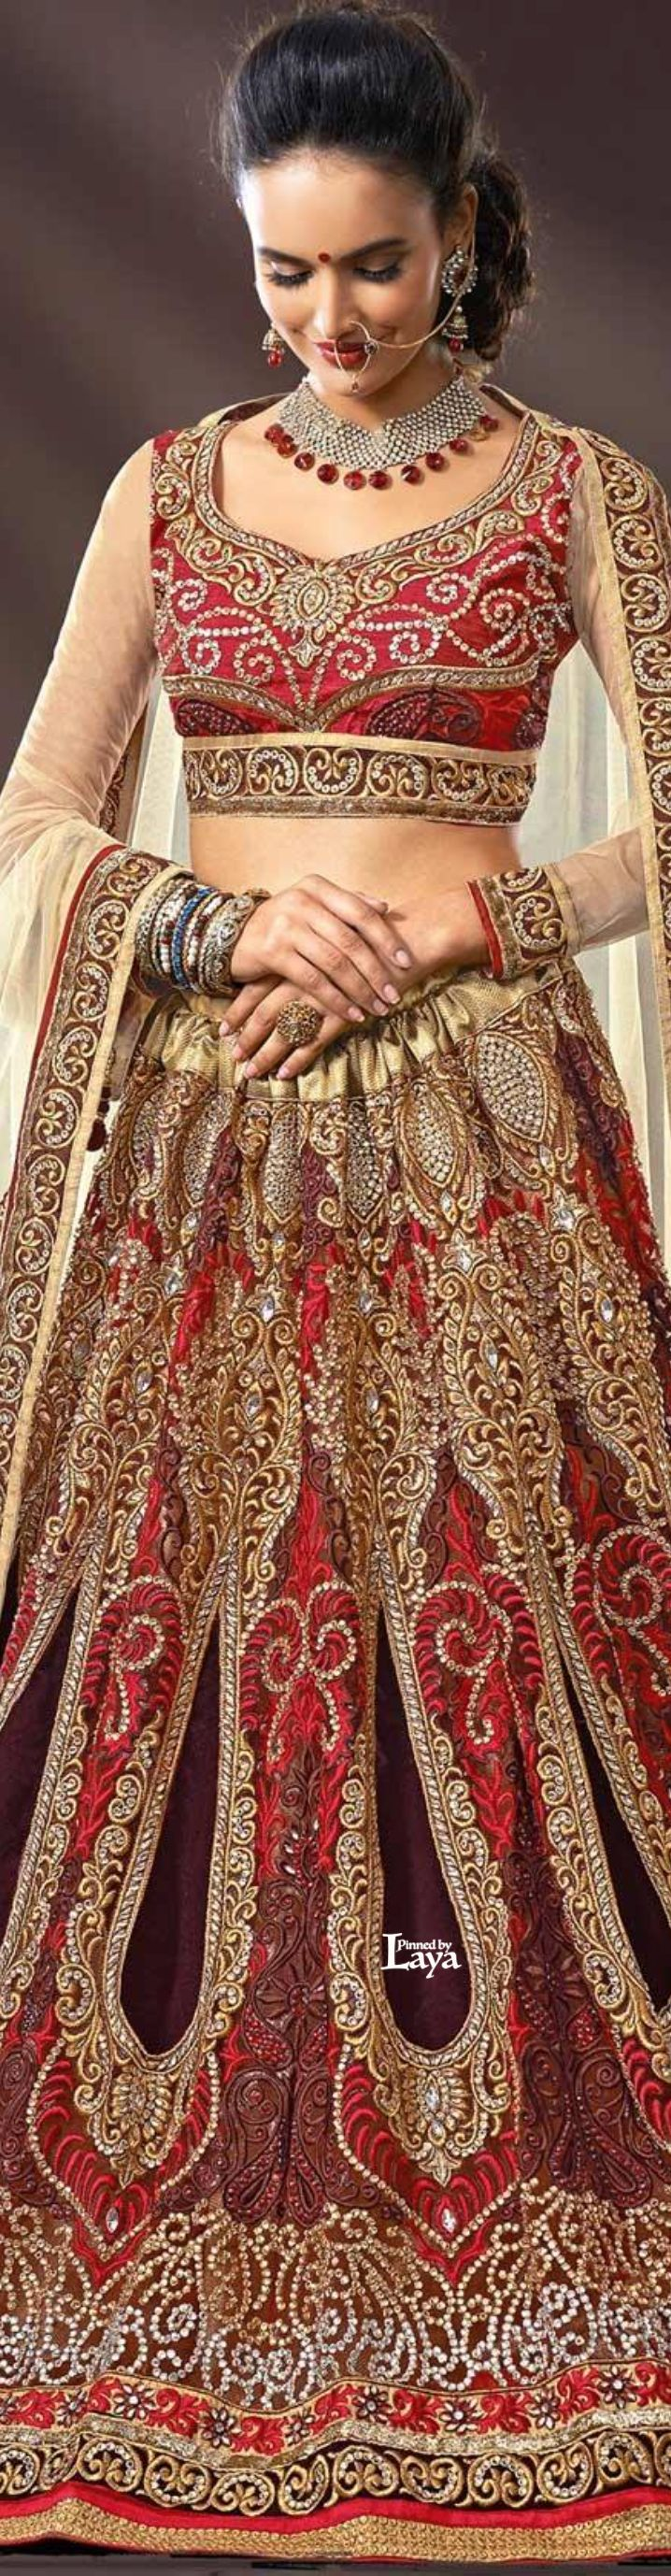 Beautiful BRIDAL Lehenga for the special day. #bride #brides #bridal #indianbride #indianwedding #wedding #marriage #india #photography #lehenga #lehnga #lehngha #choli #outfit #couture